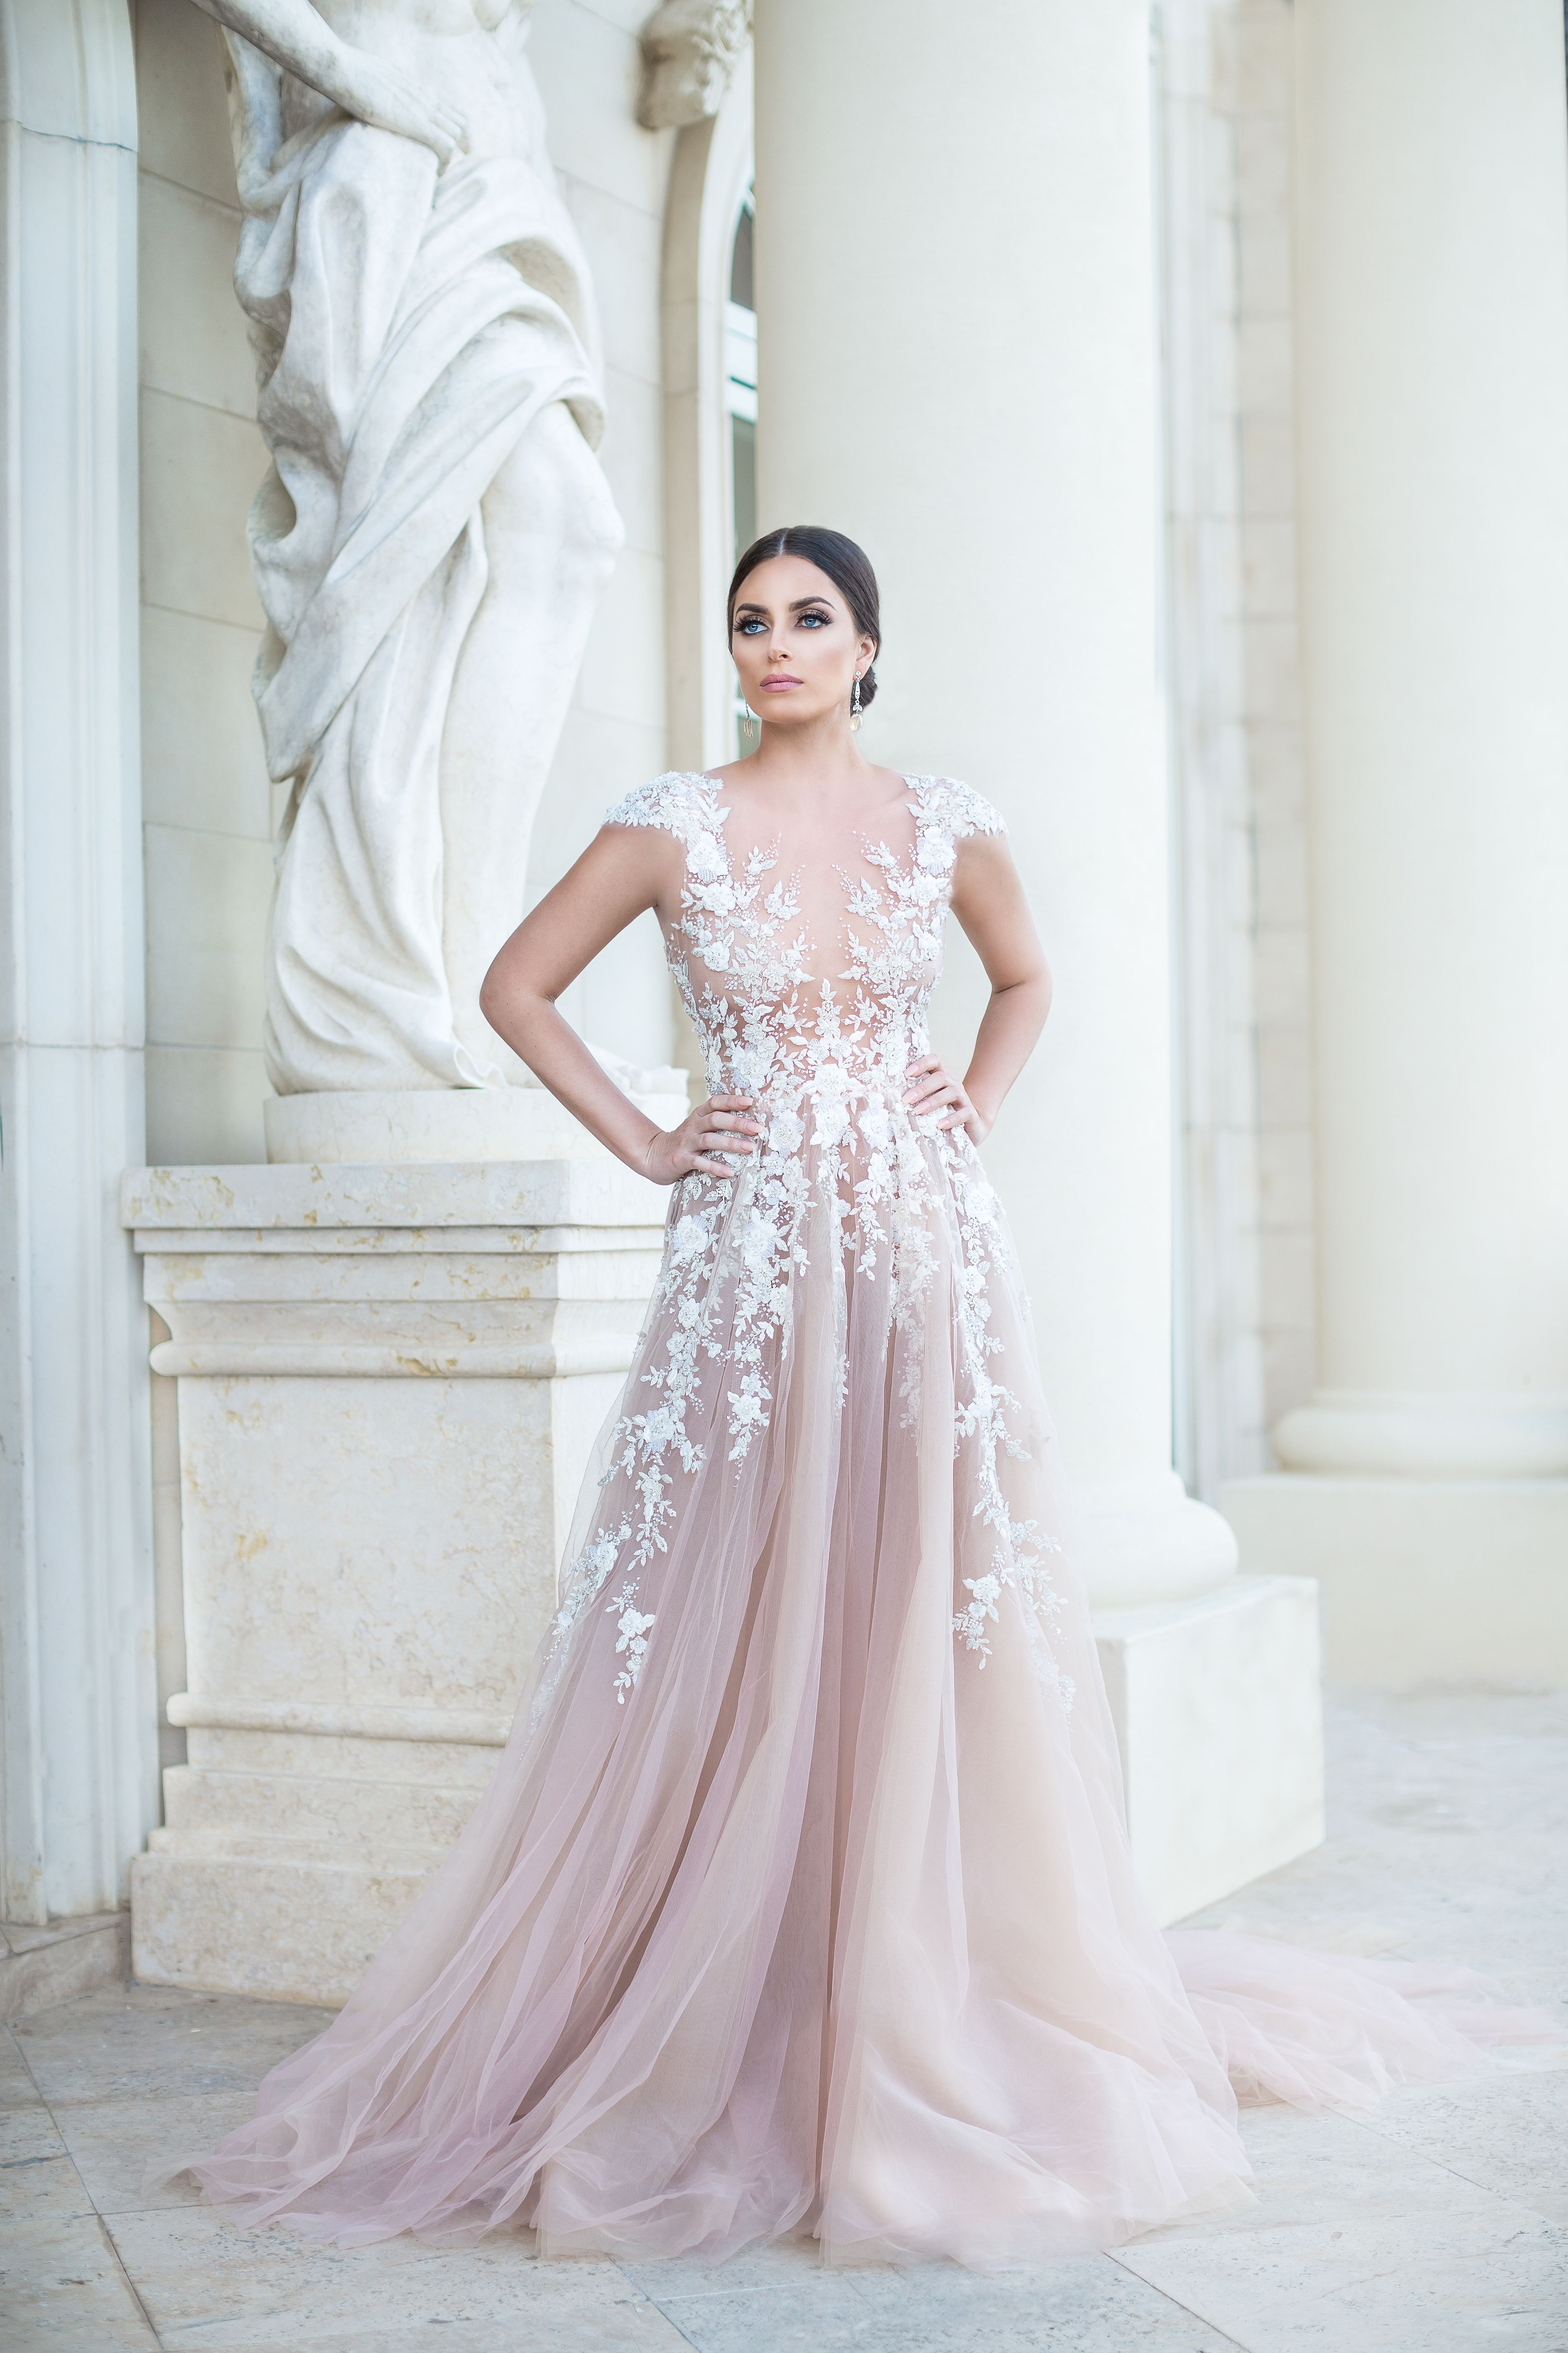 Embellished Pinkish Bridal Gown Atelier Pedram Couture Dinner